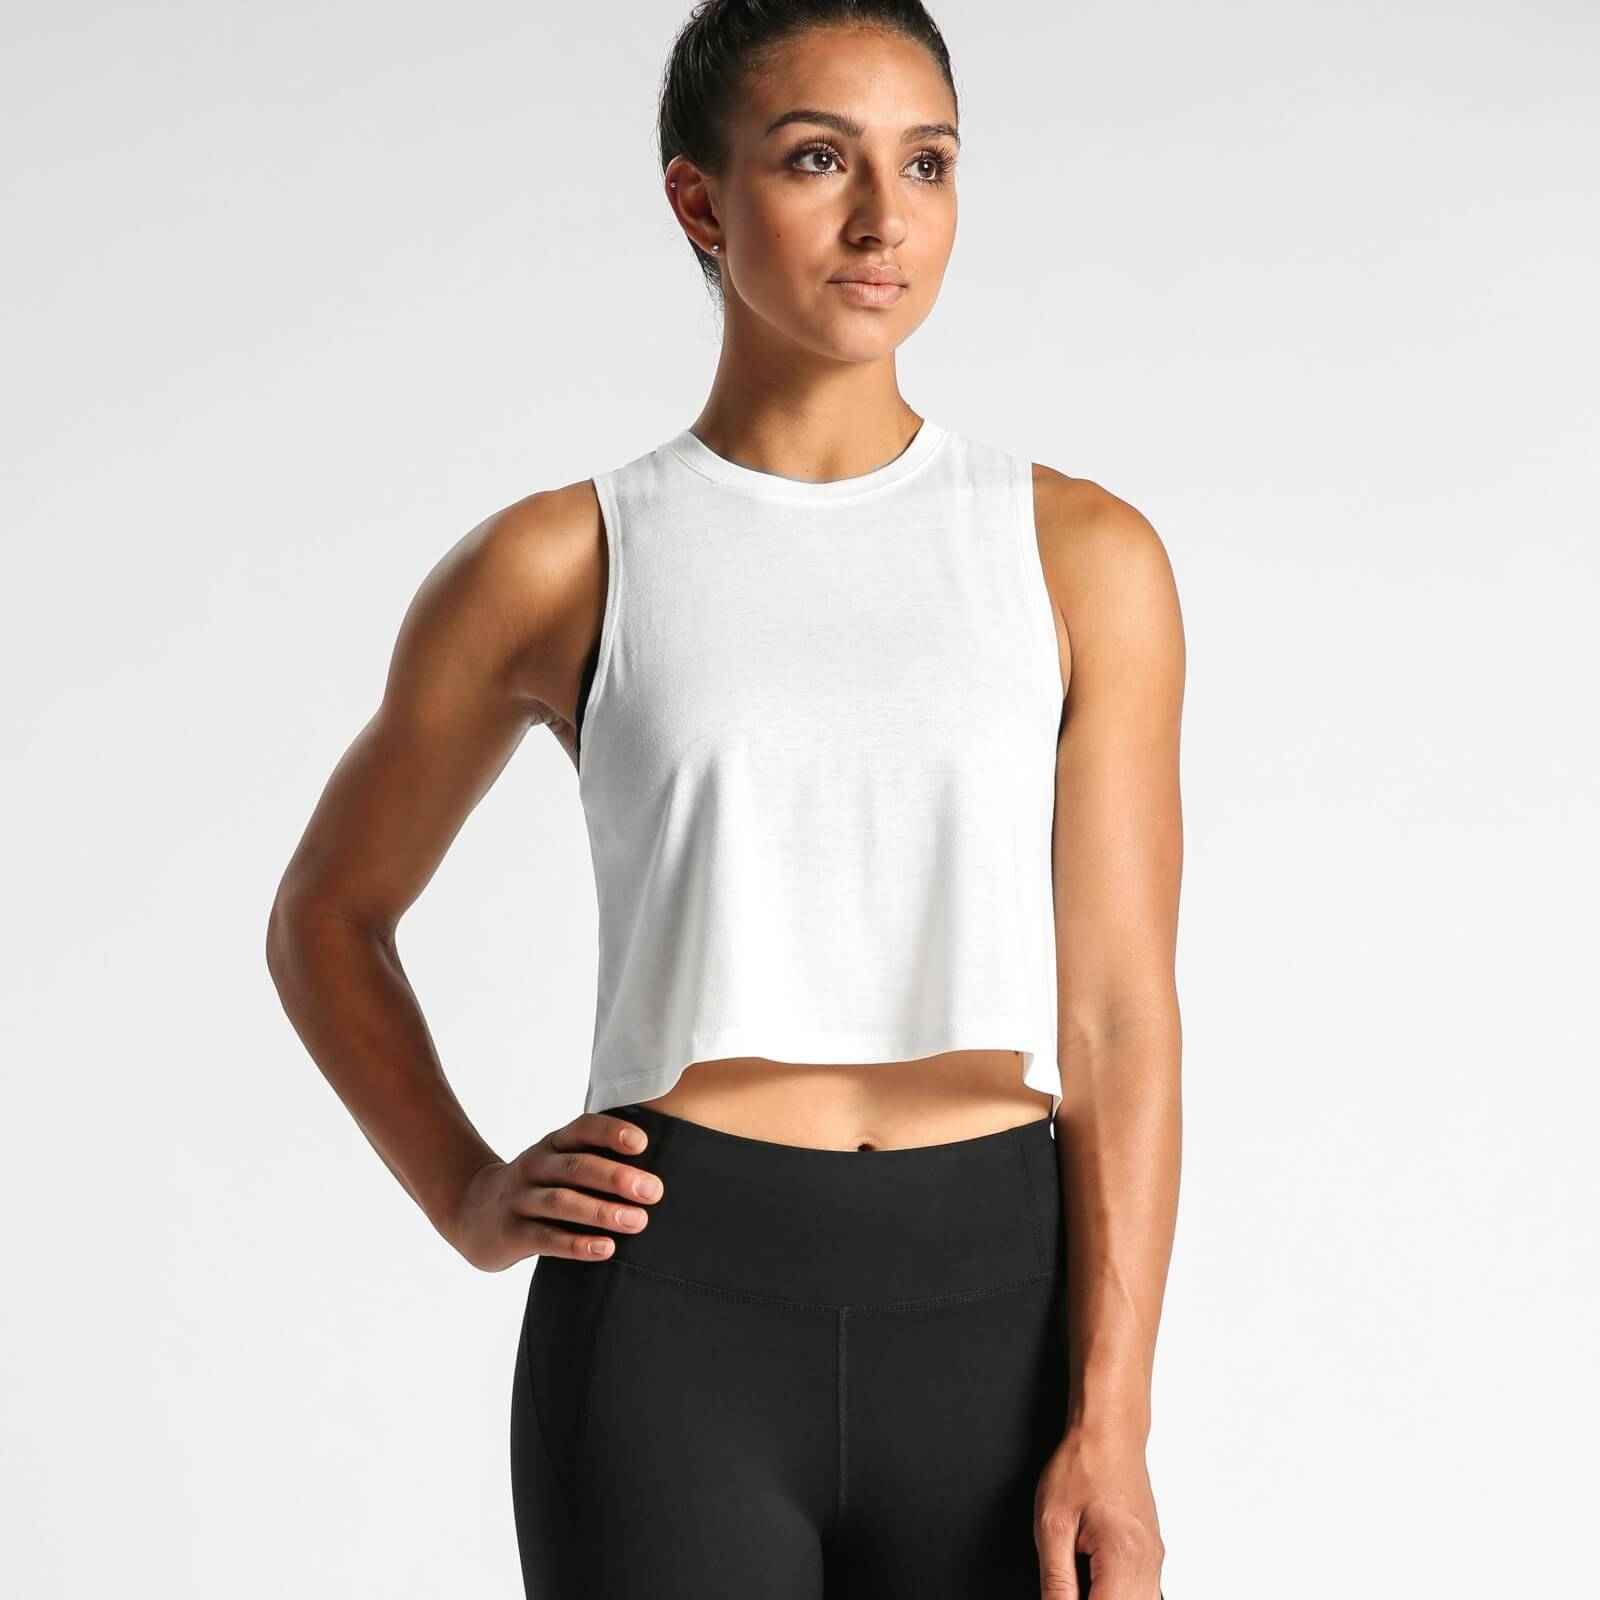 IdealFit Flowy Crop Top - White - M - White